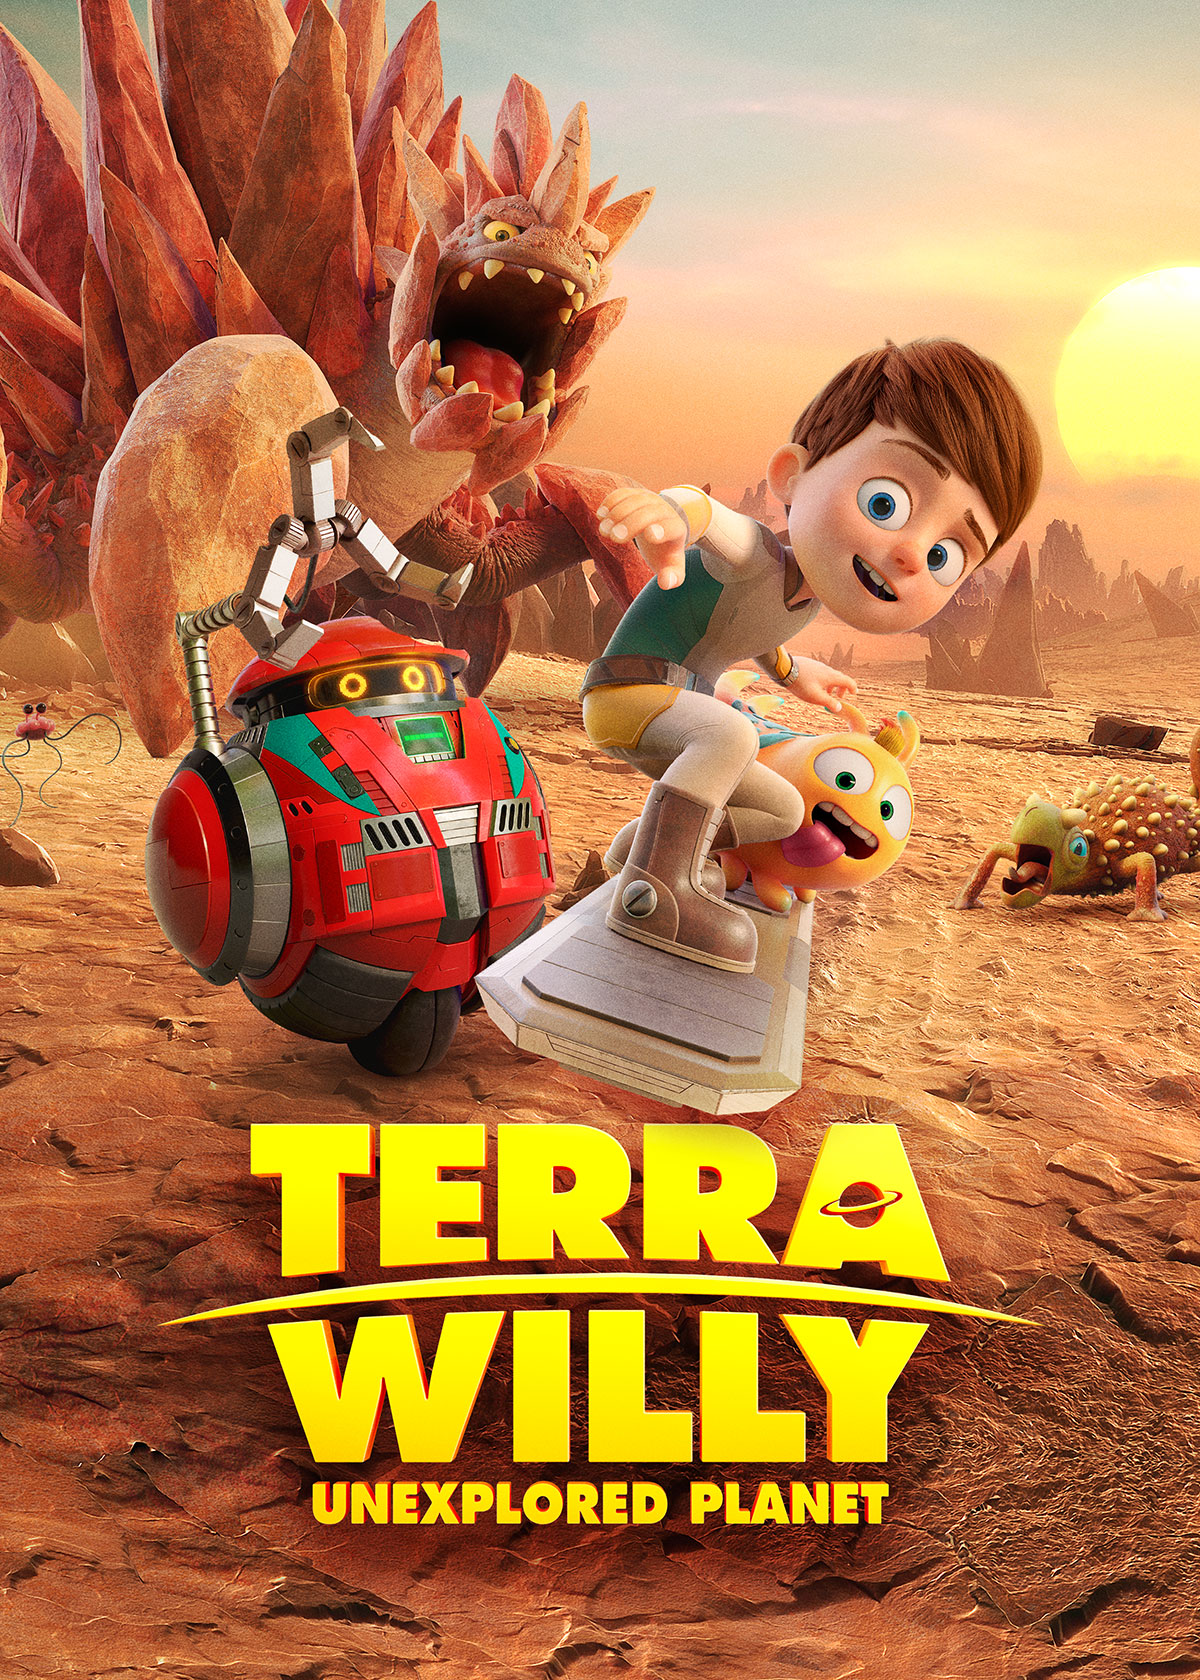 Terra Willy Movie Review & Activity Sheets